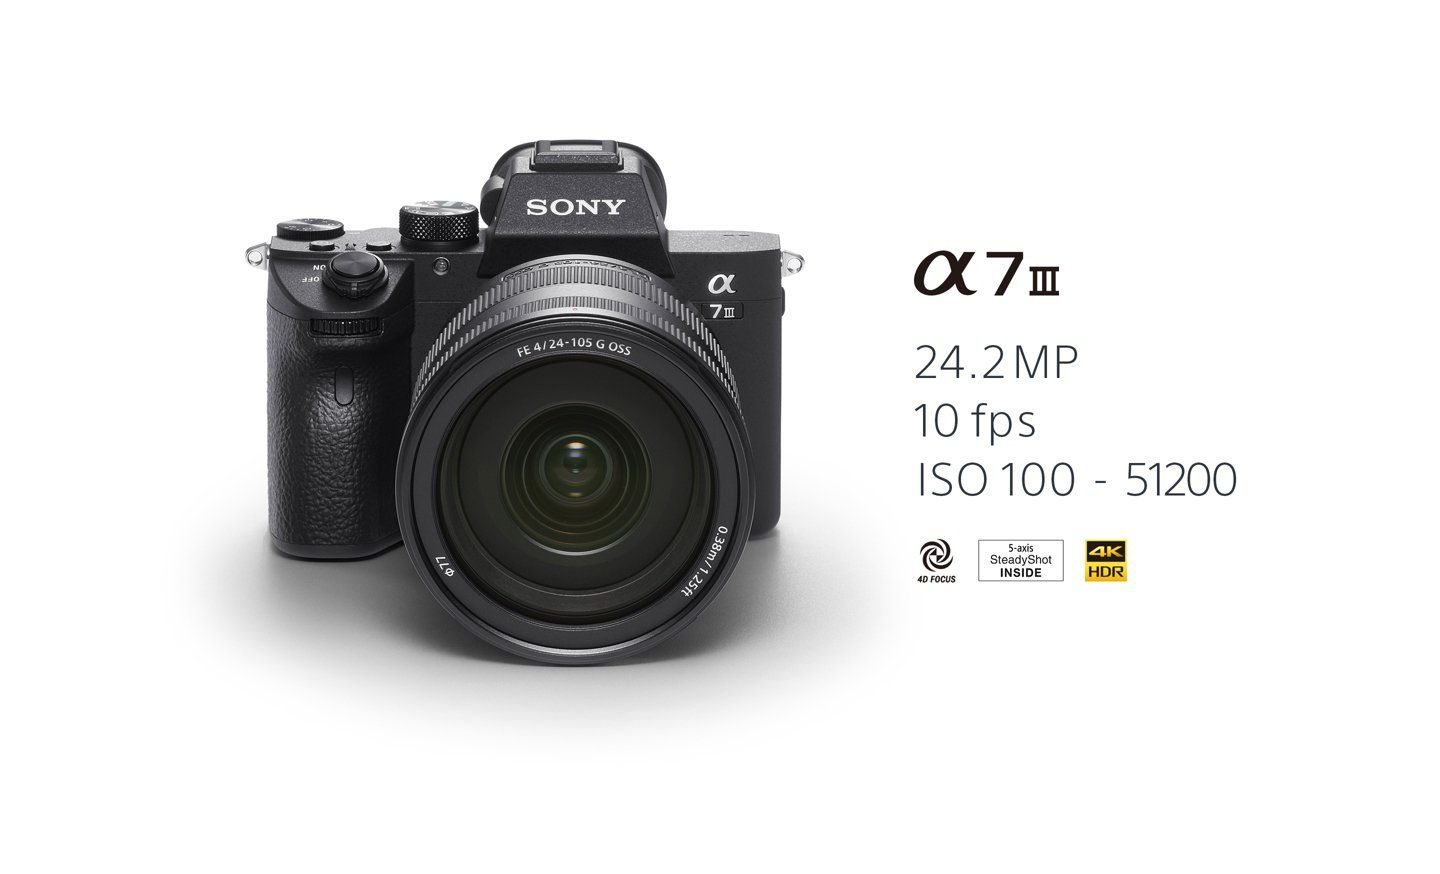 Sony A7 III full-frame mirrorless camera launched in India: Price